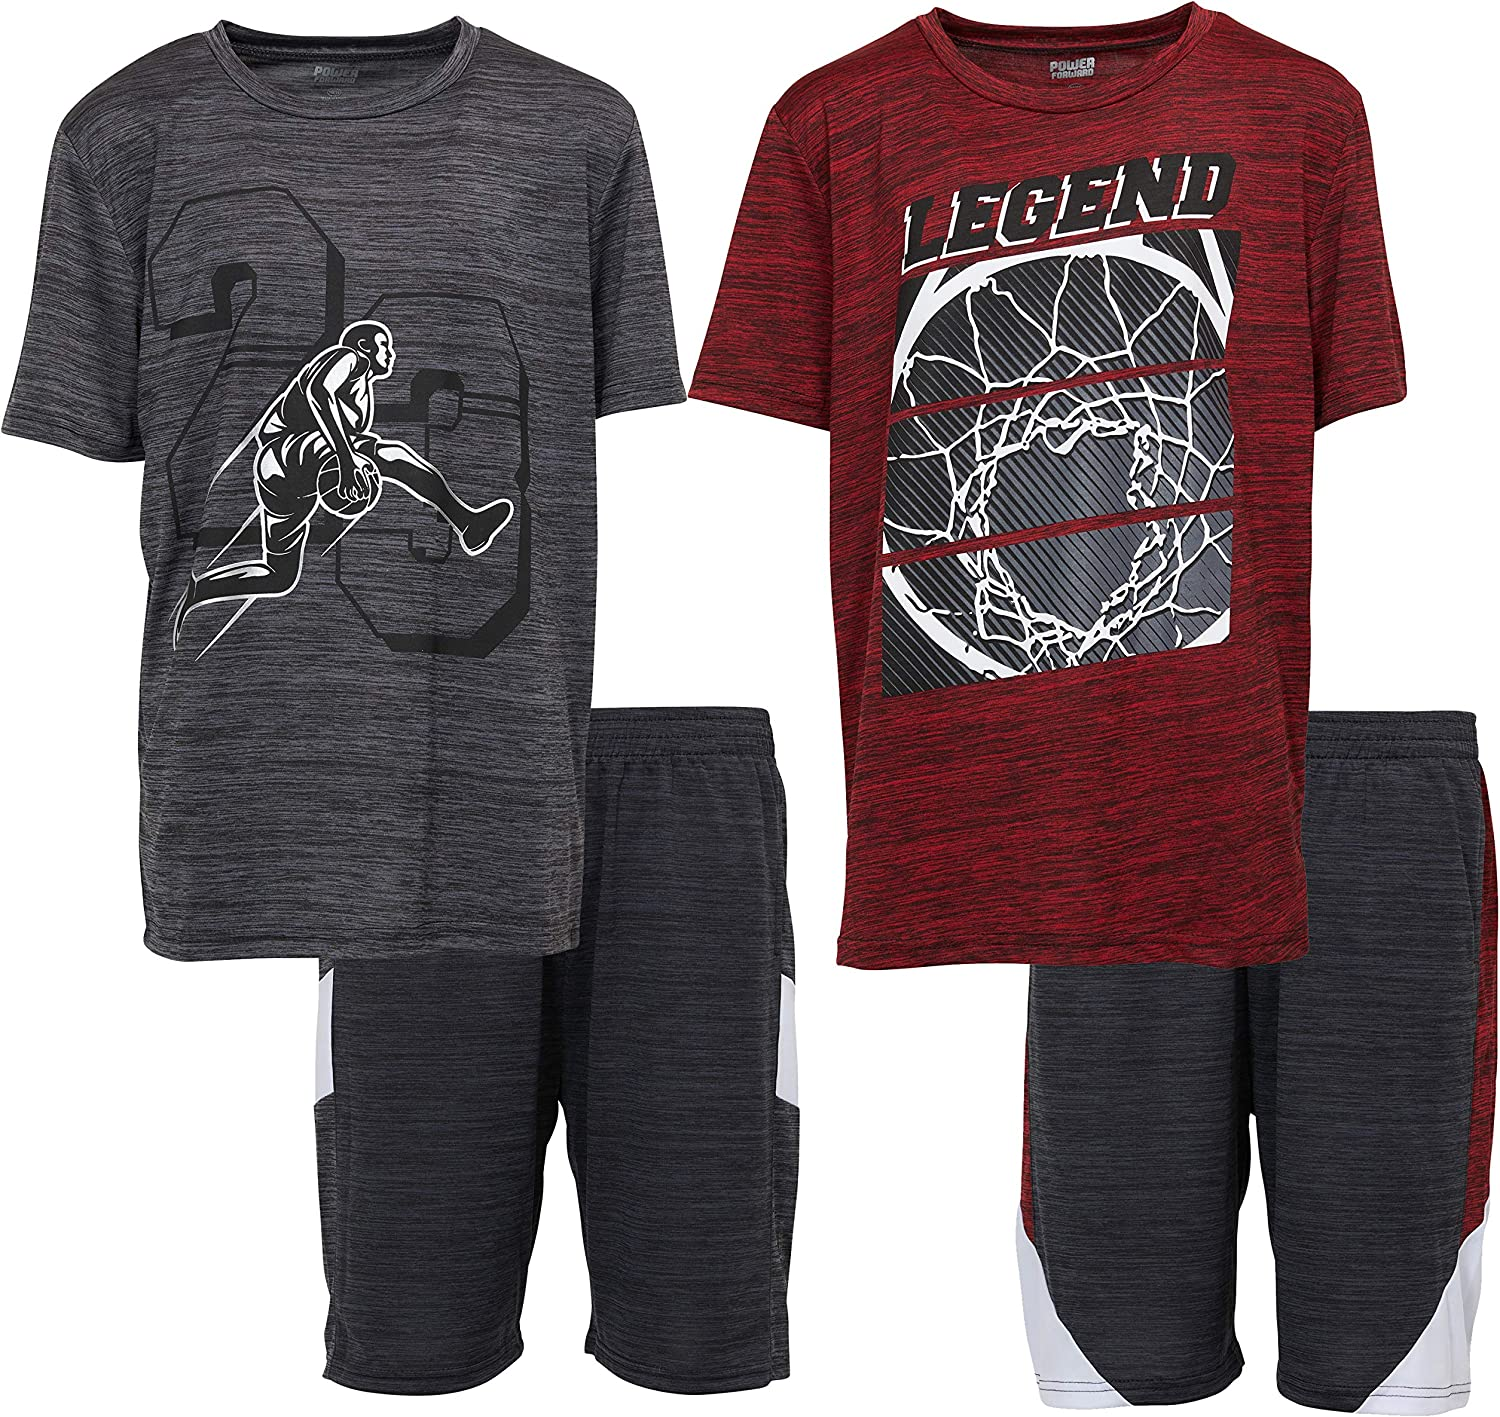 Boys Youth Athletic Active Performance Sports 4 Piece Graphic T-Shirt...